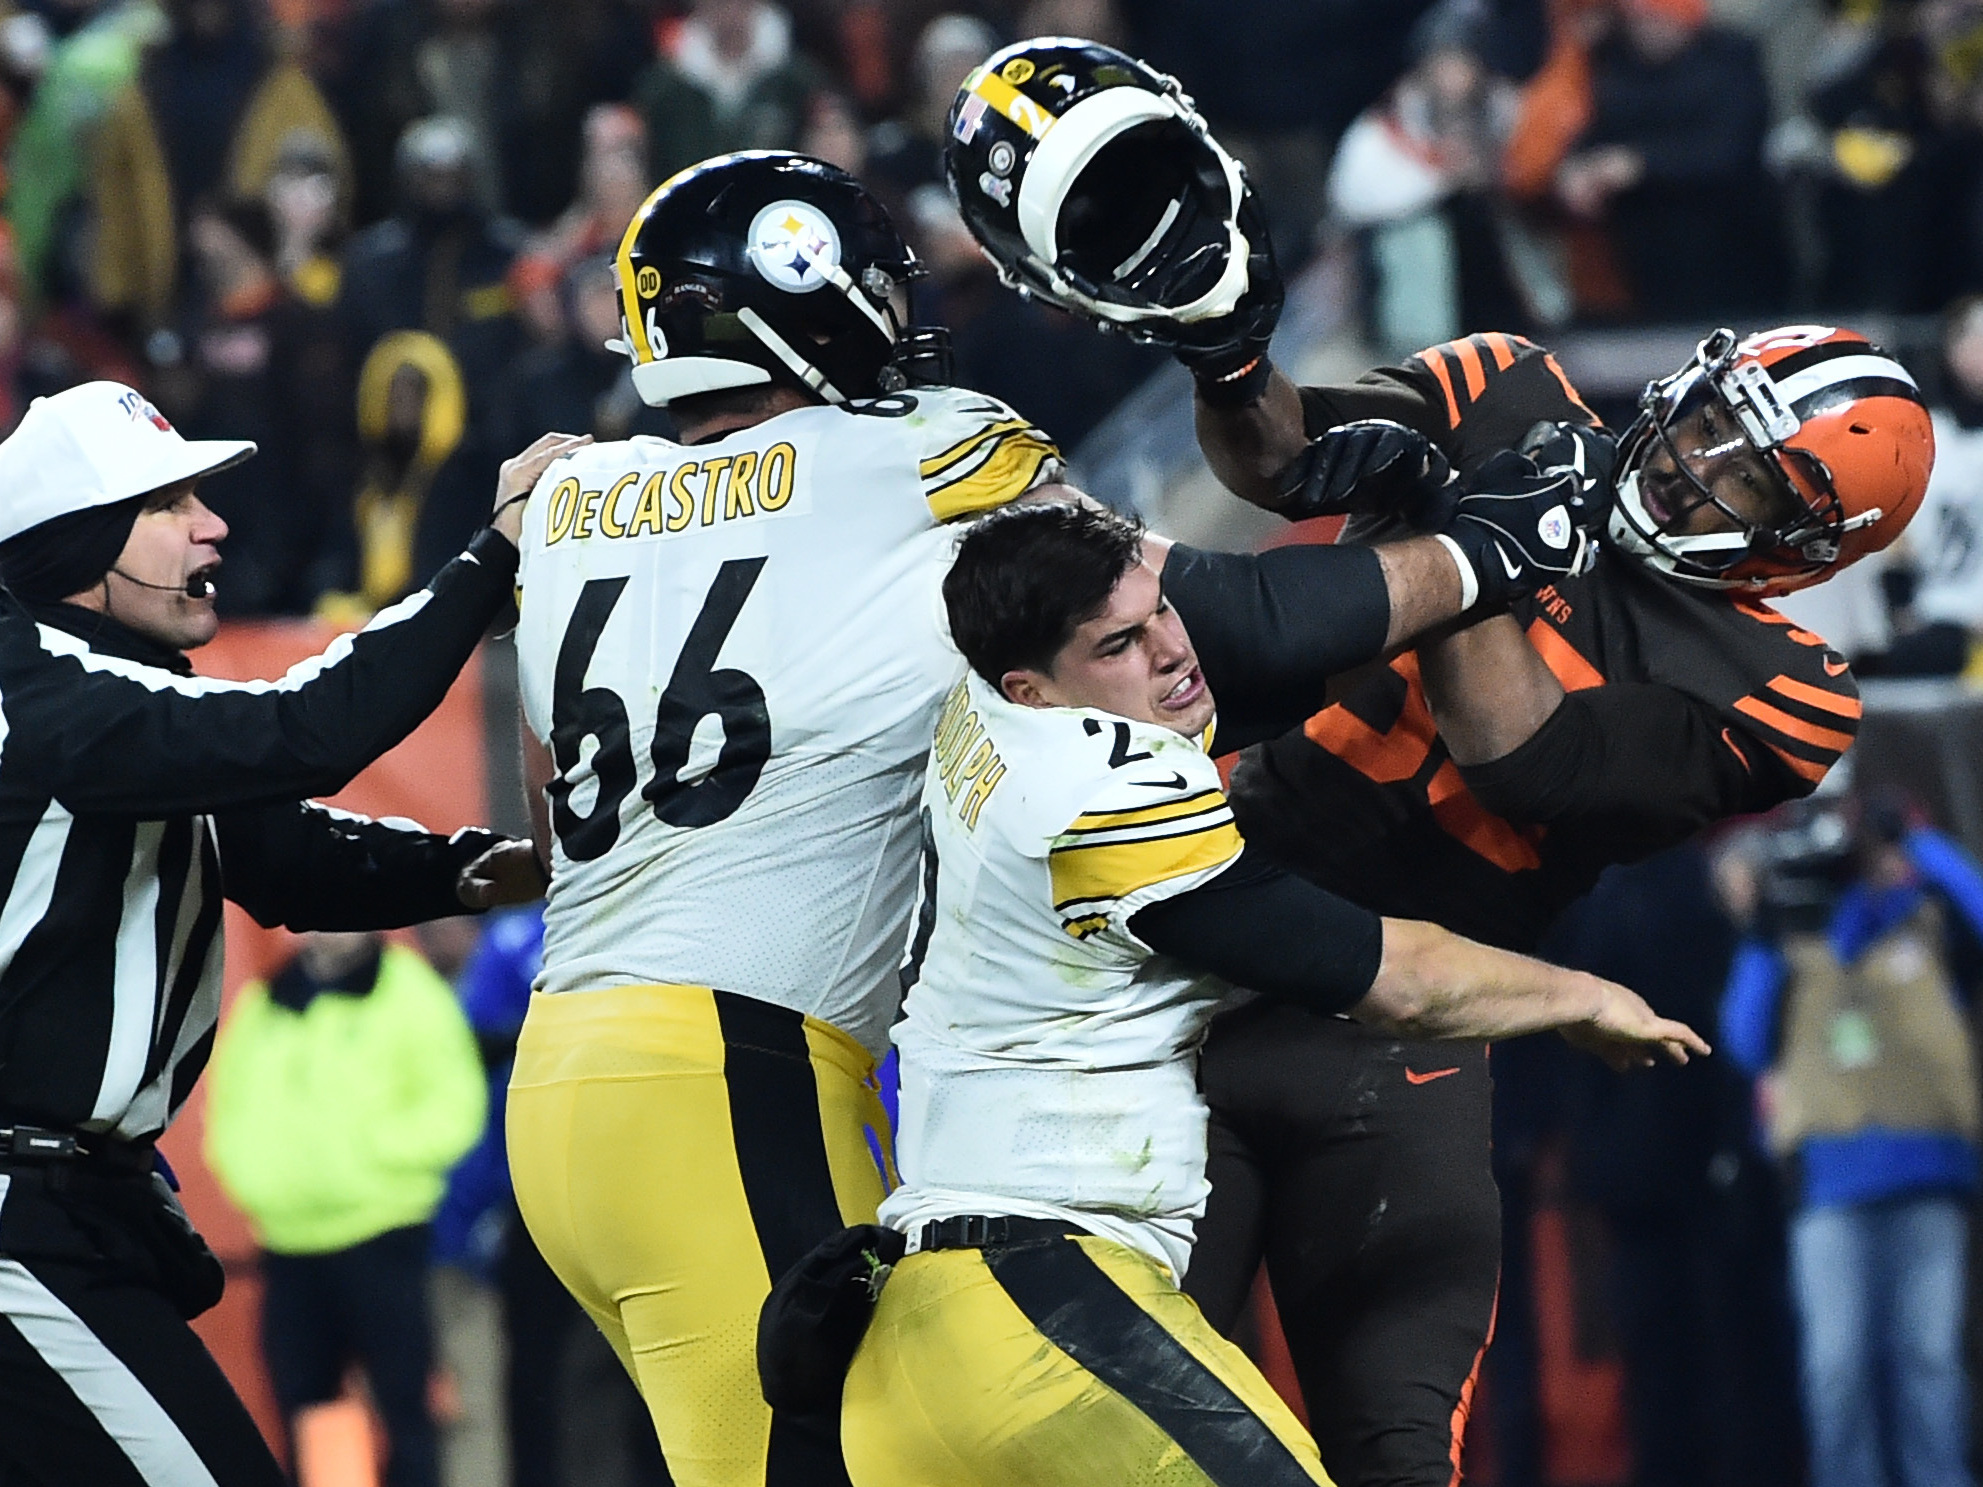 NFL Is Poised To Discipline Myles Garrett For Hitting Steelers QB With His Own Helmet